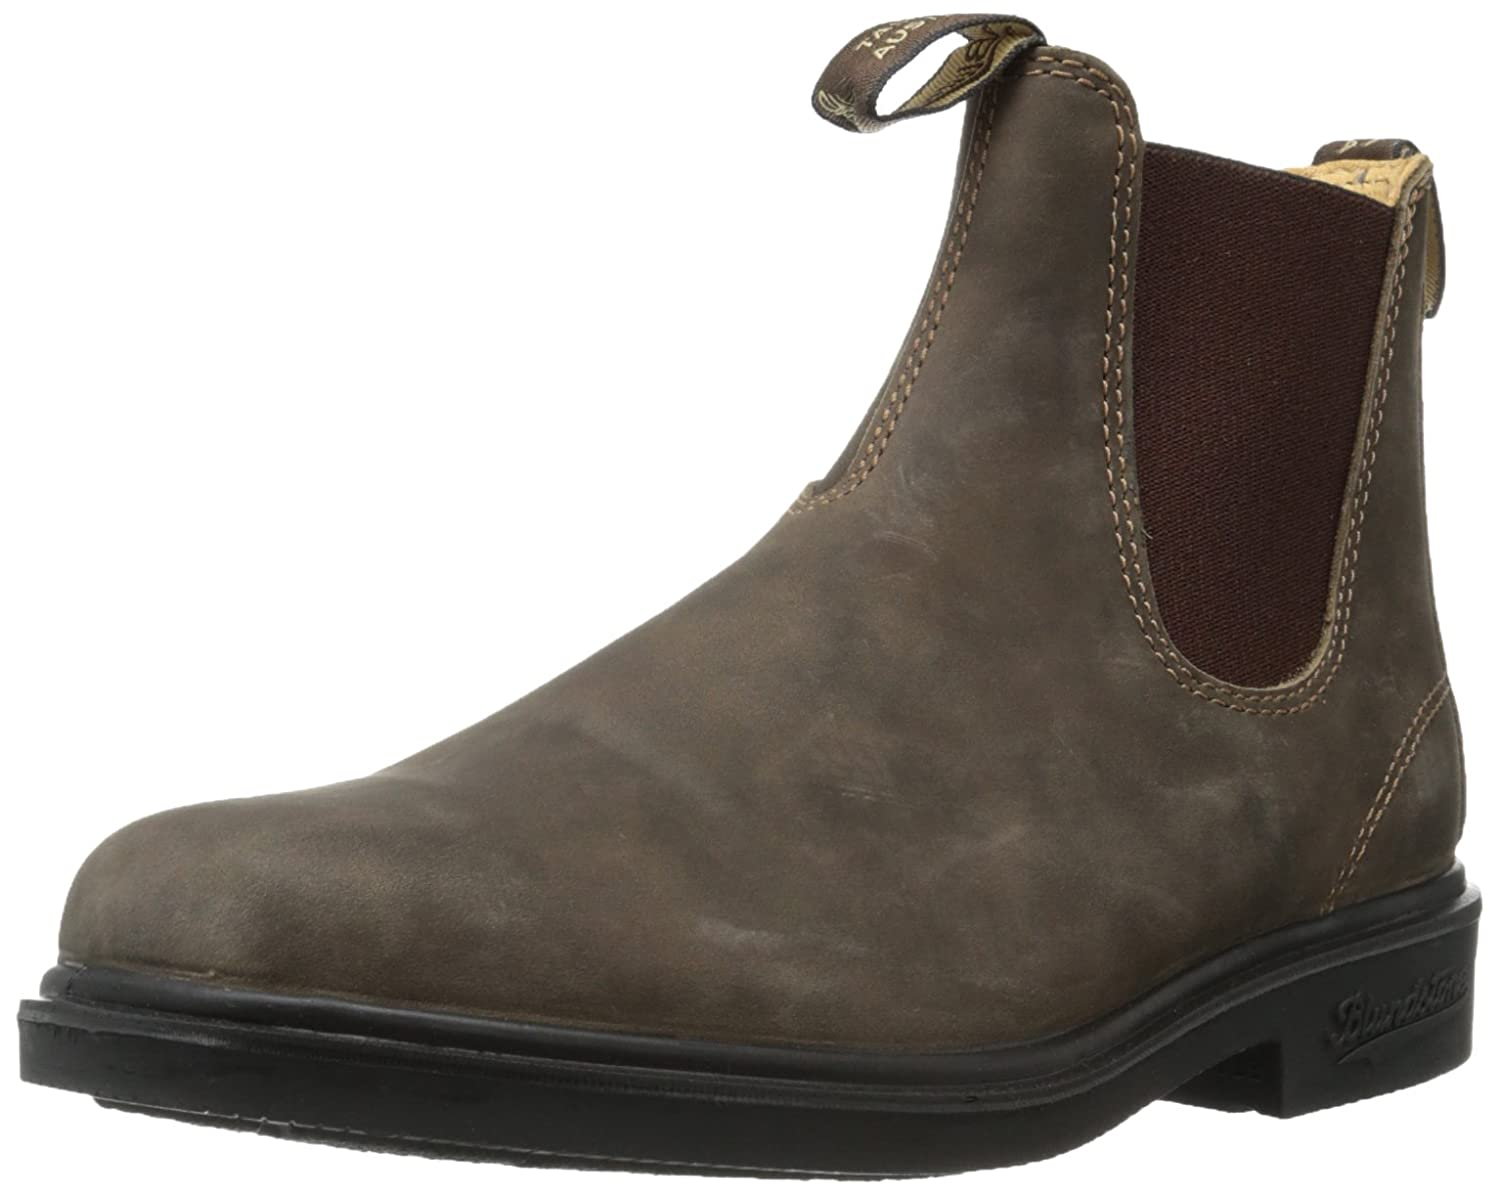 Blundstone Unisex Dress Series B07CZQZ19R US 12.0/UK 11.0|Rustic Brown